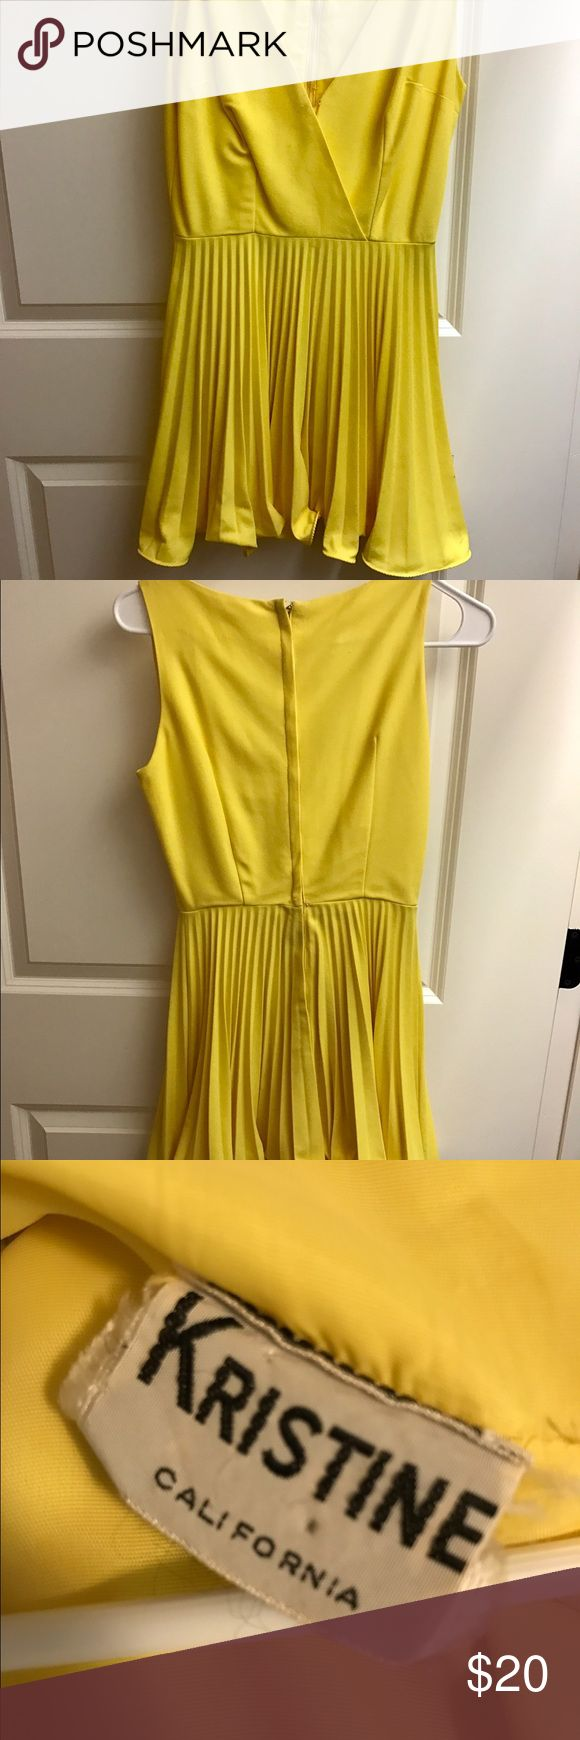 Weekend Sale! 🙌🏻 Vintage Yellow Dress Brand: Kristine, Size: Small/Medium (this dress is larger in the bust area), Yellow, Vintage - great condition Dresses